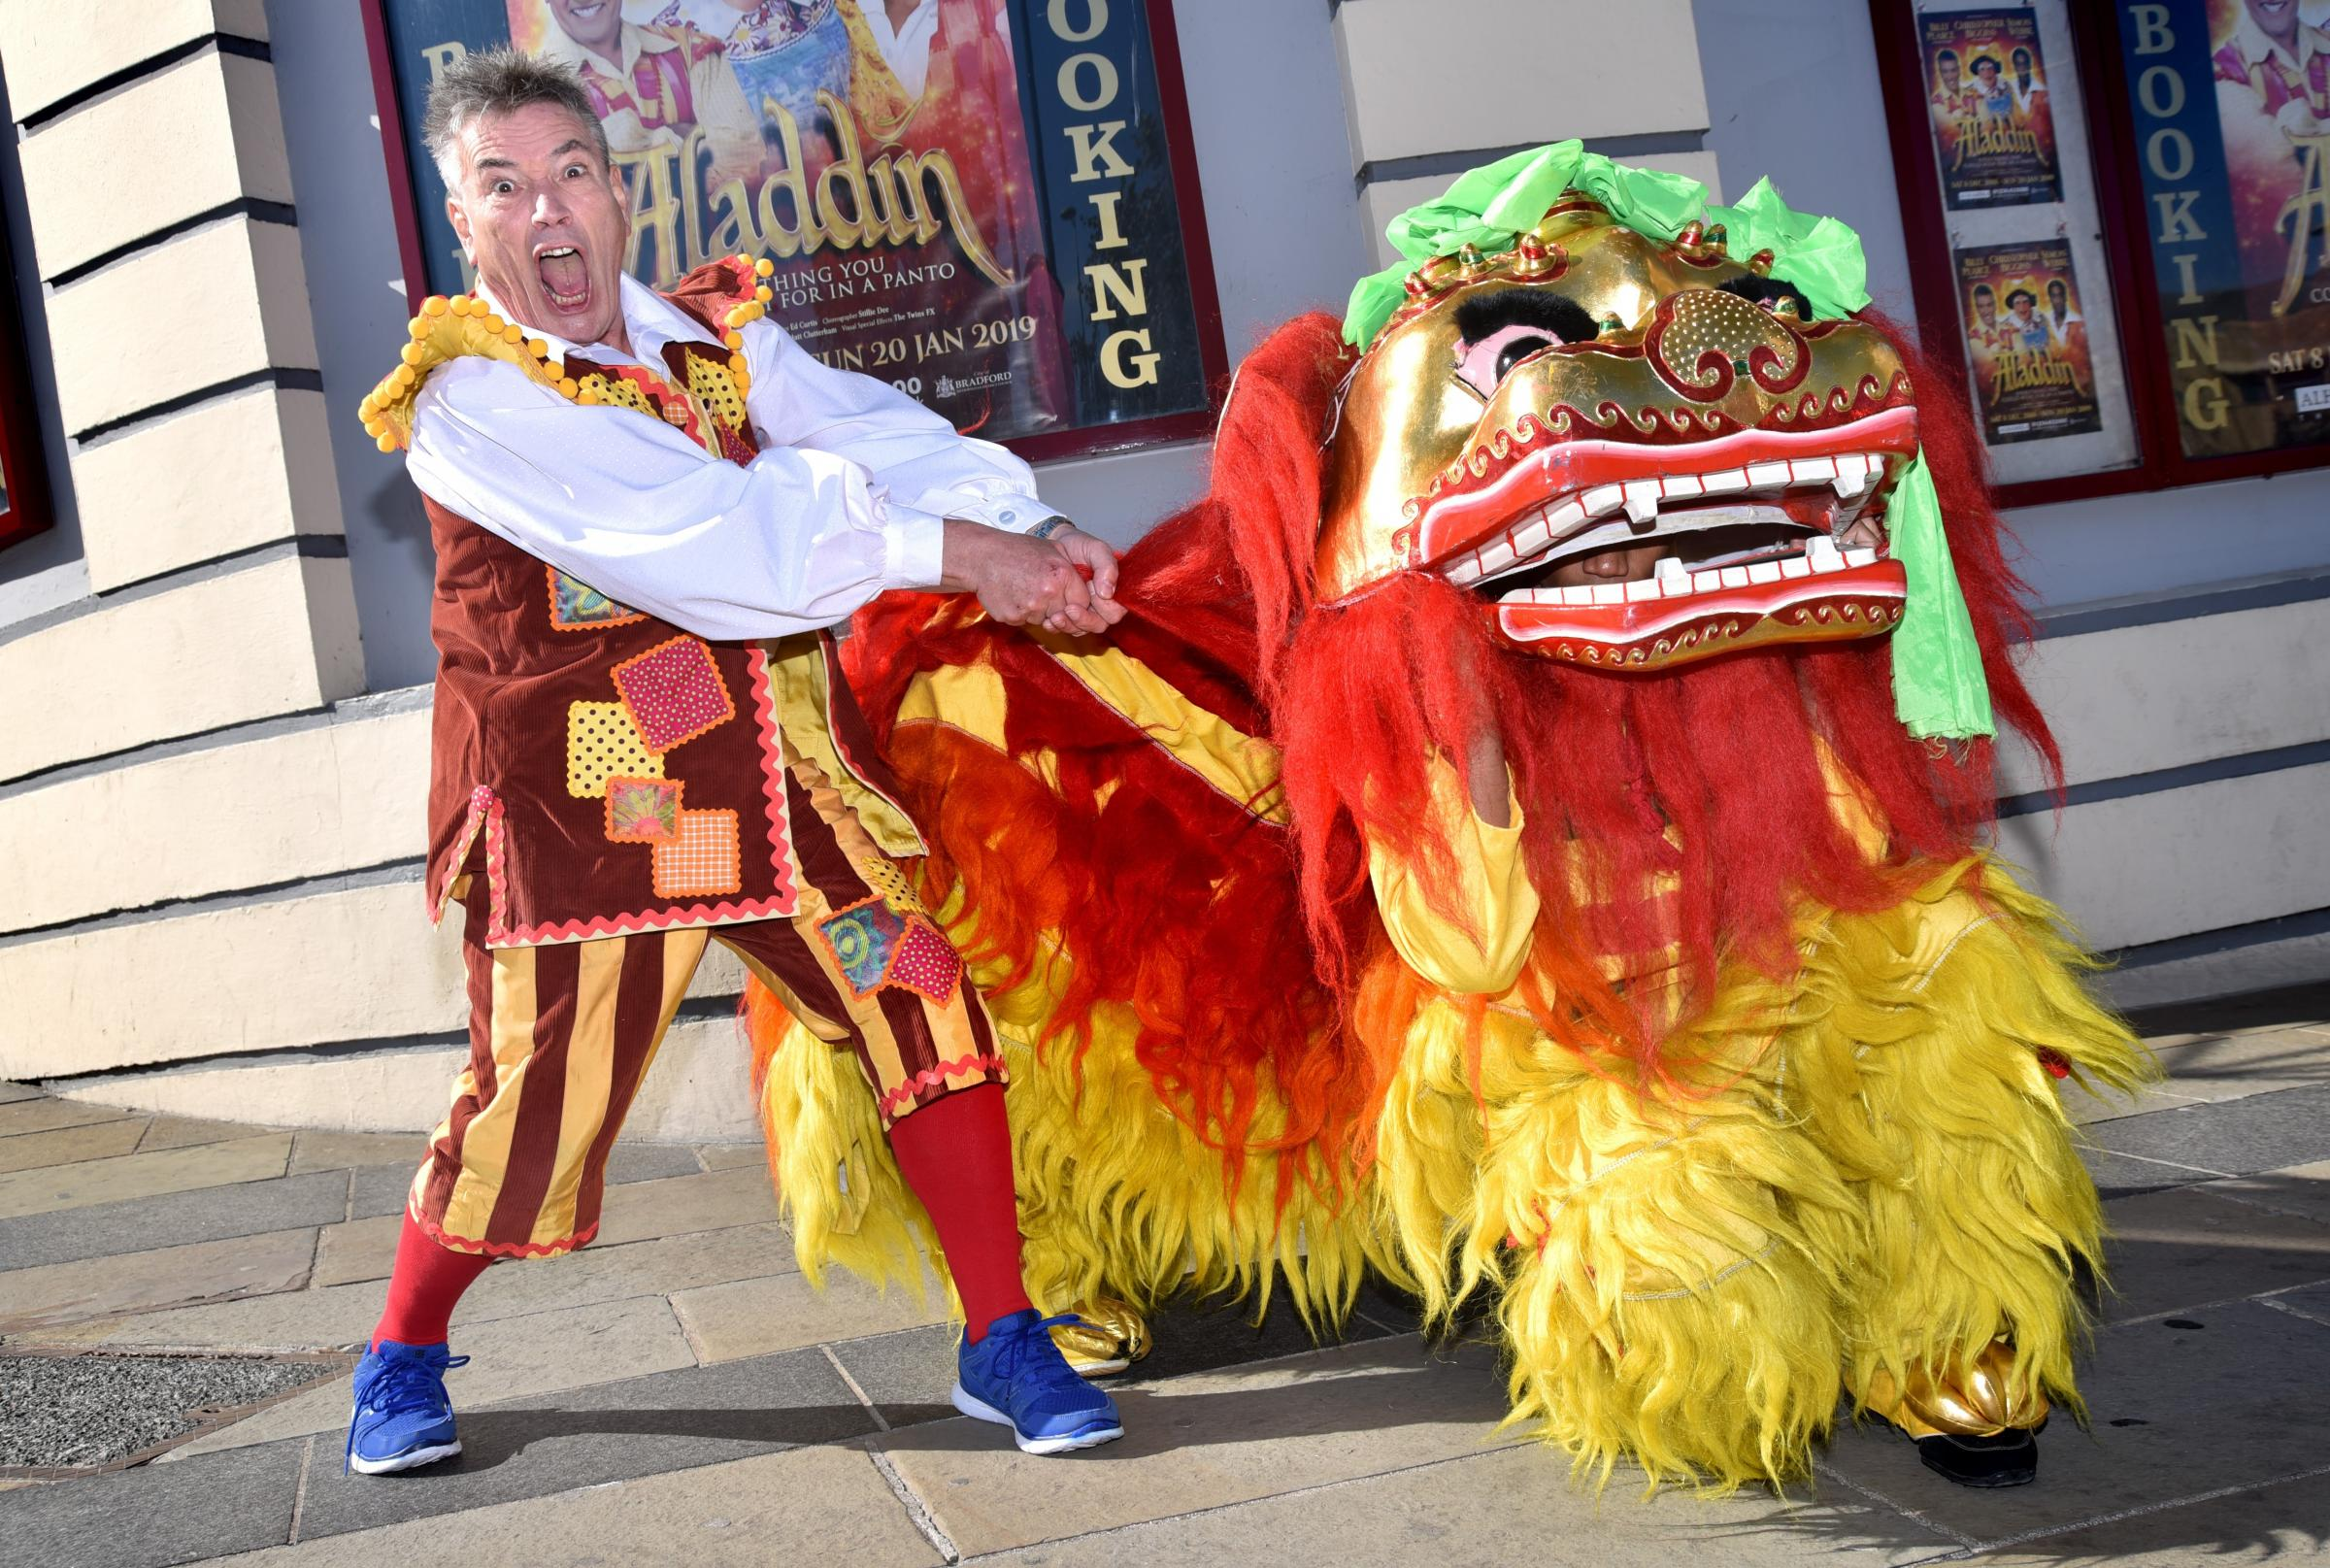 The Cast of the 2018 Bradford pantomime Aladin ..Walking the Dragon is Billy Pearce as Aladin's brother.